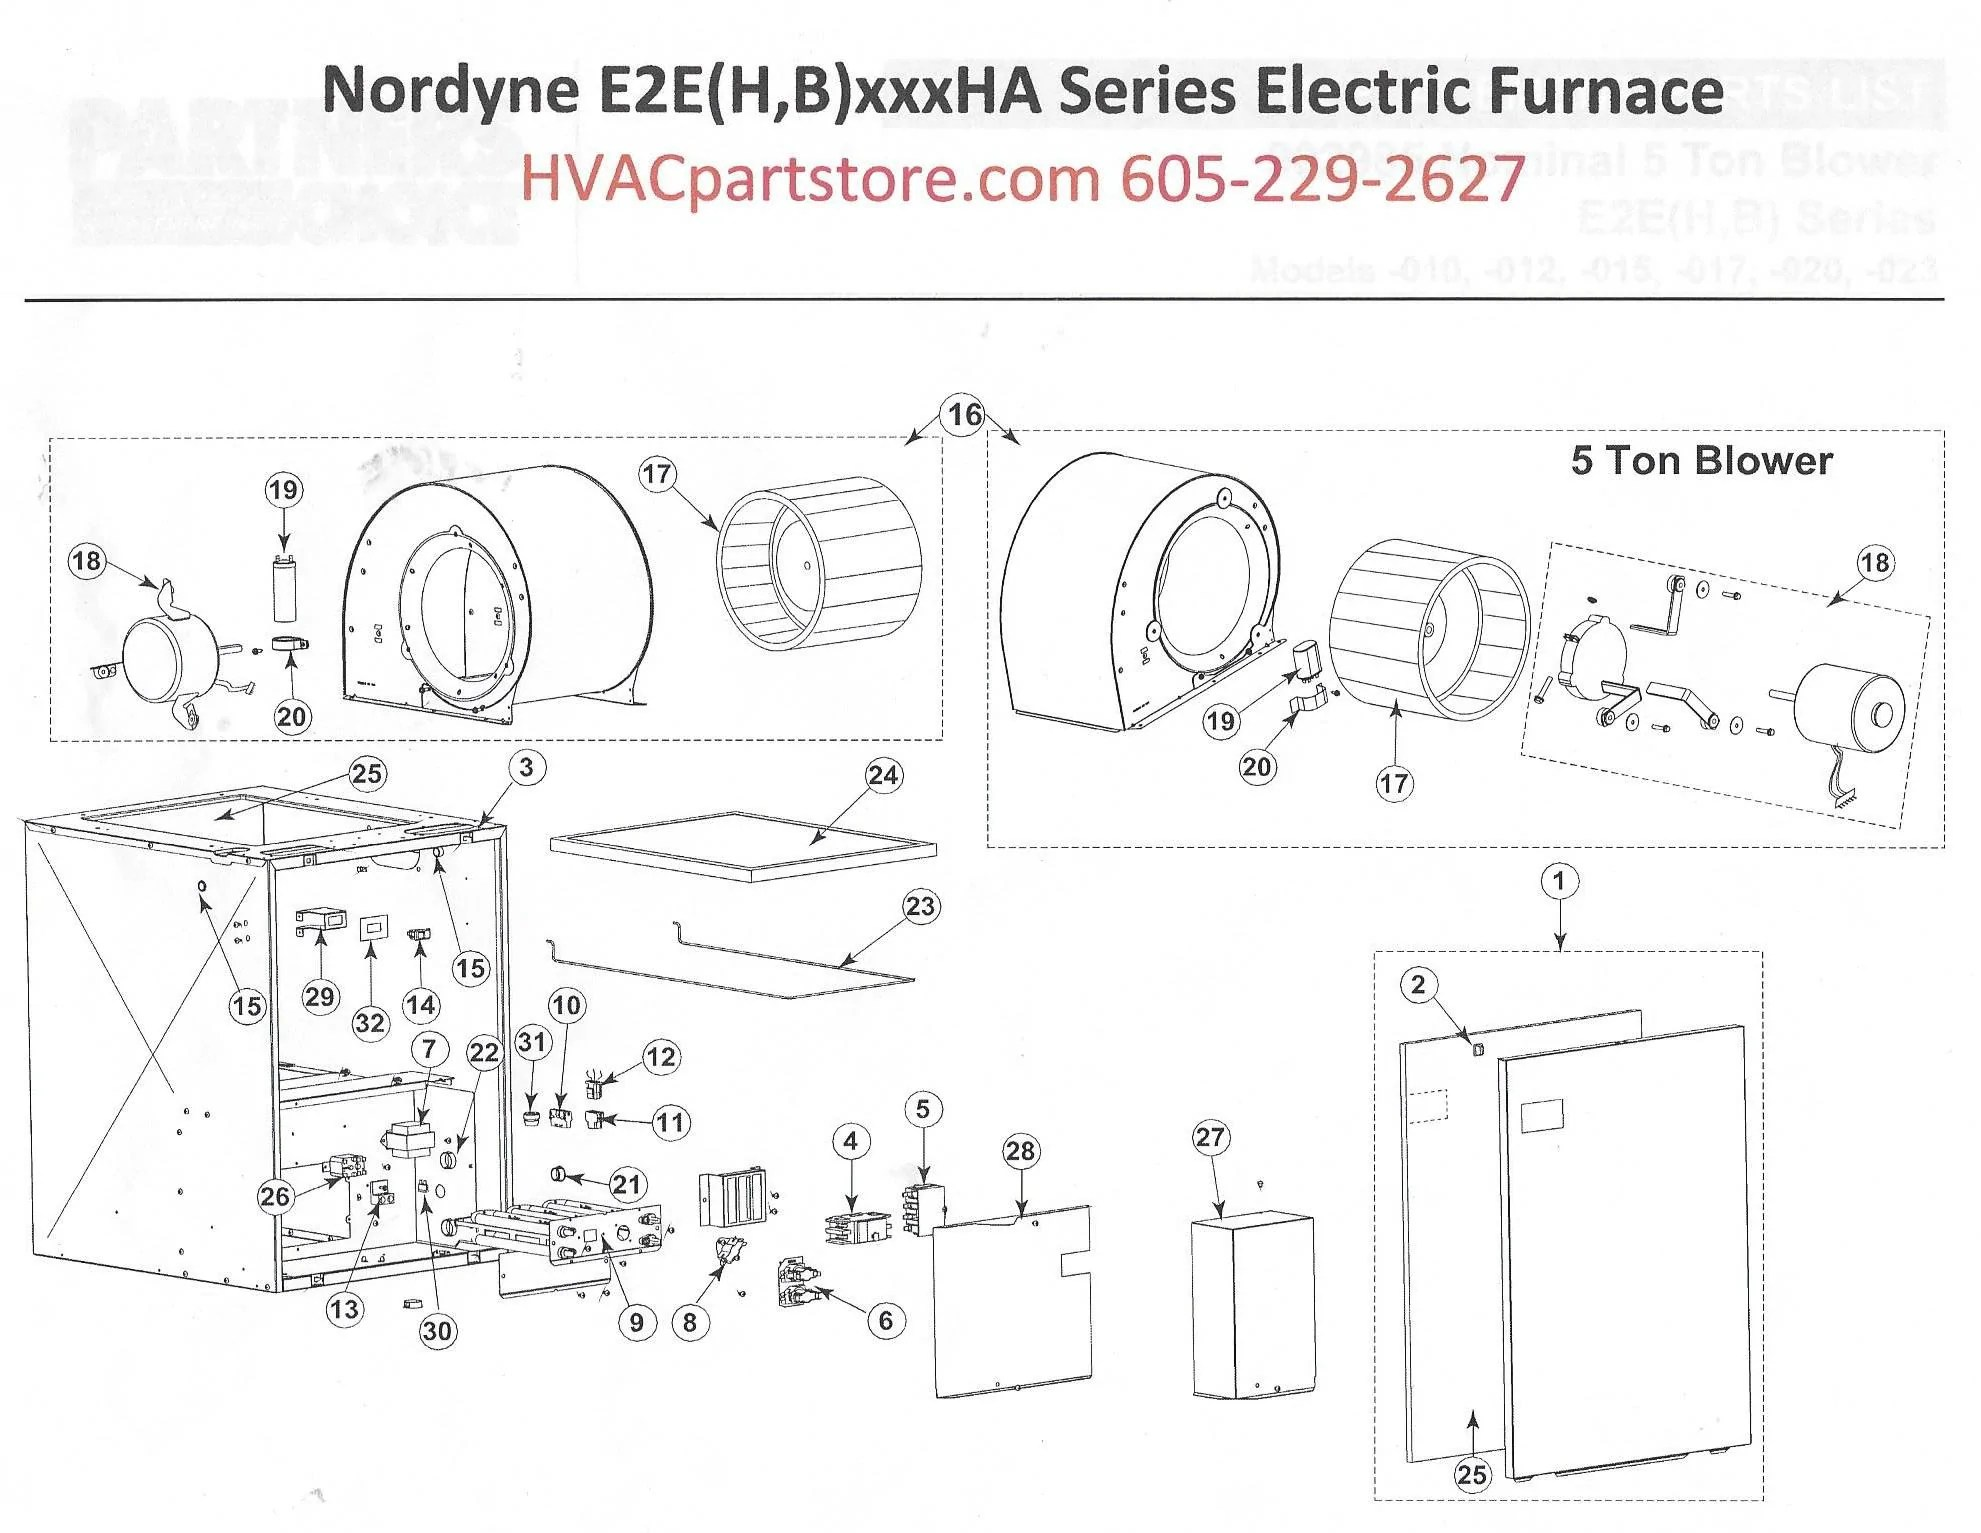 nordyne condenser unit wiring diagram phase of traffic lights e2eb020ha electric furnace parts  hvacpartstore